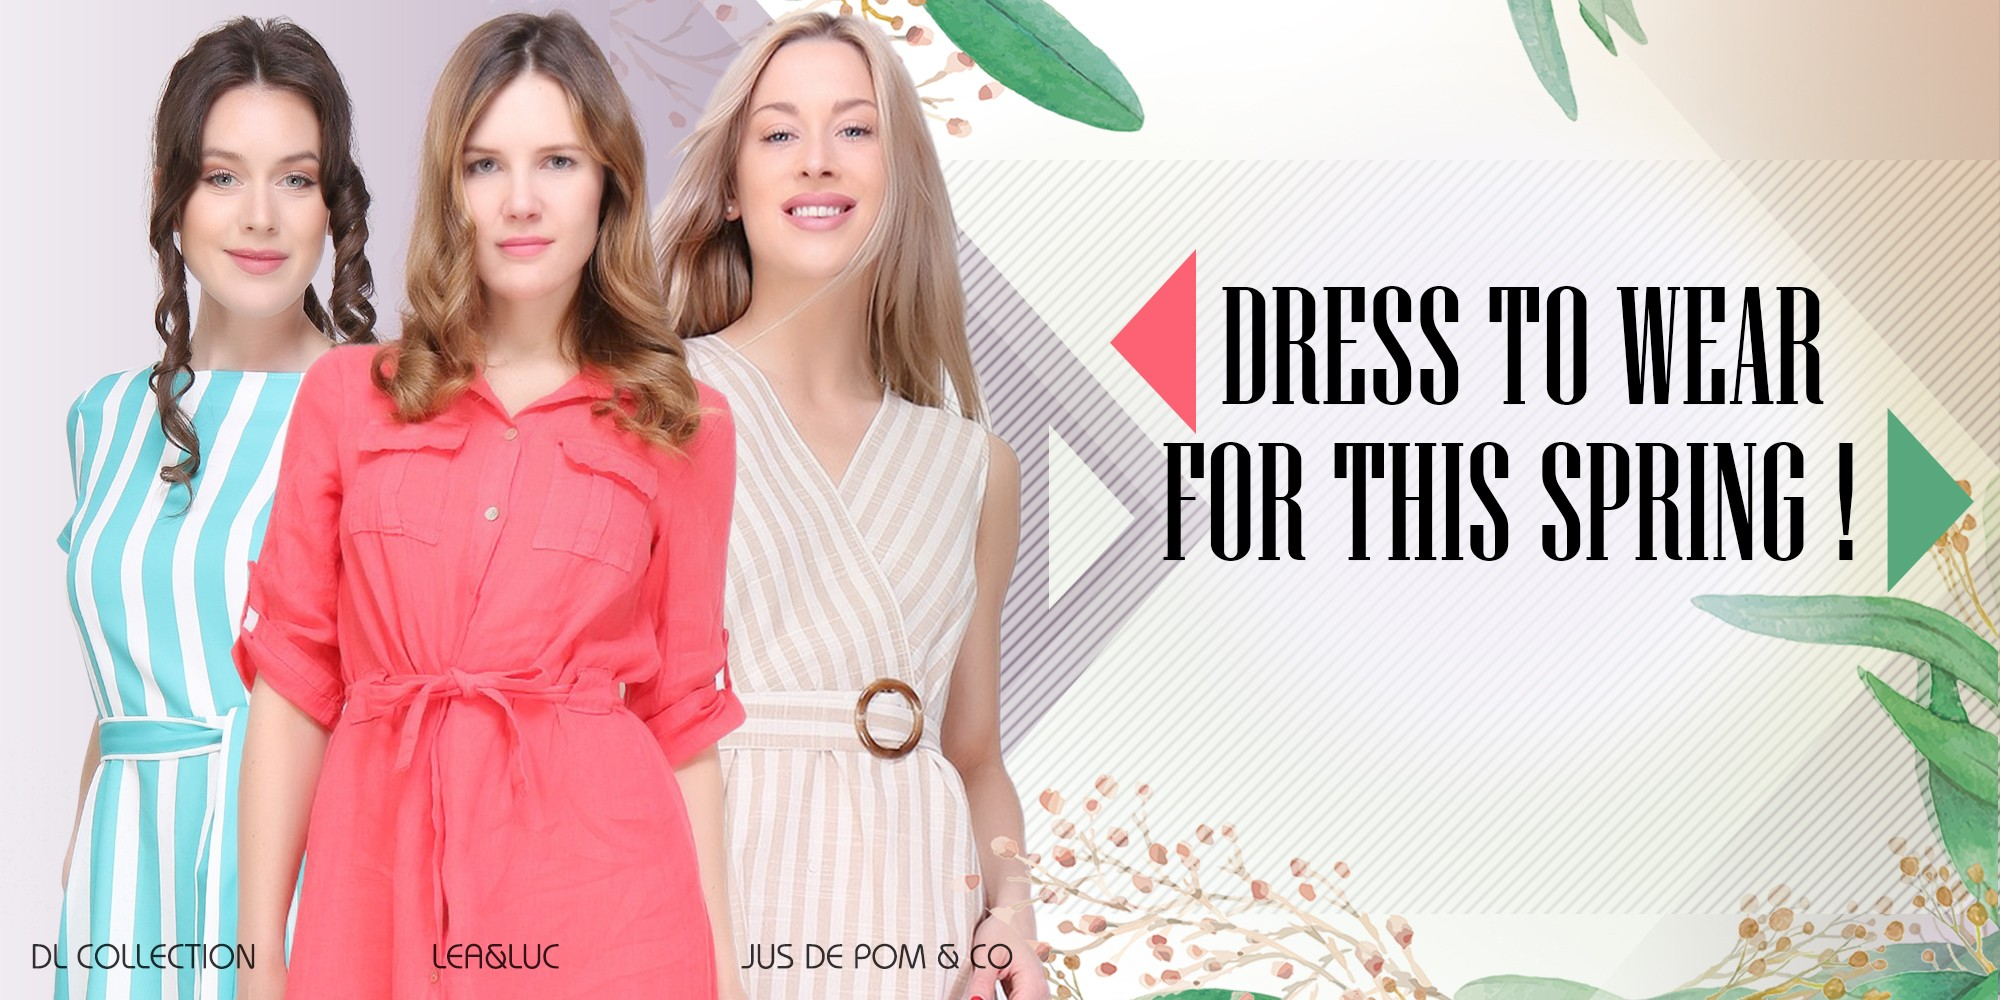 Dresse for this spring